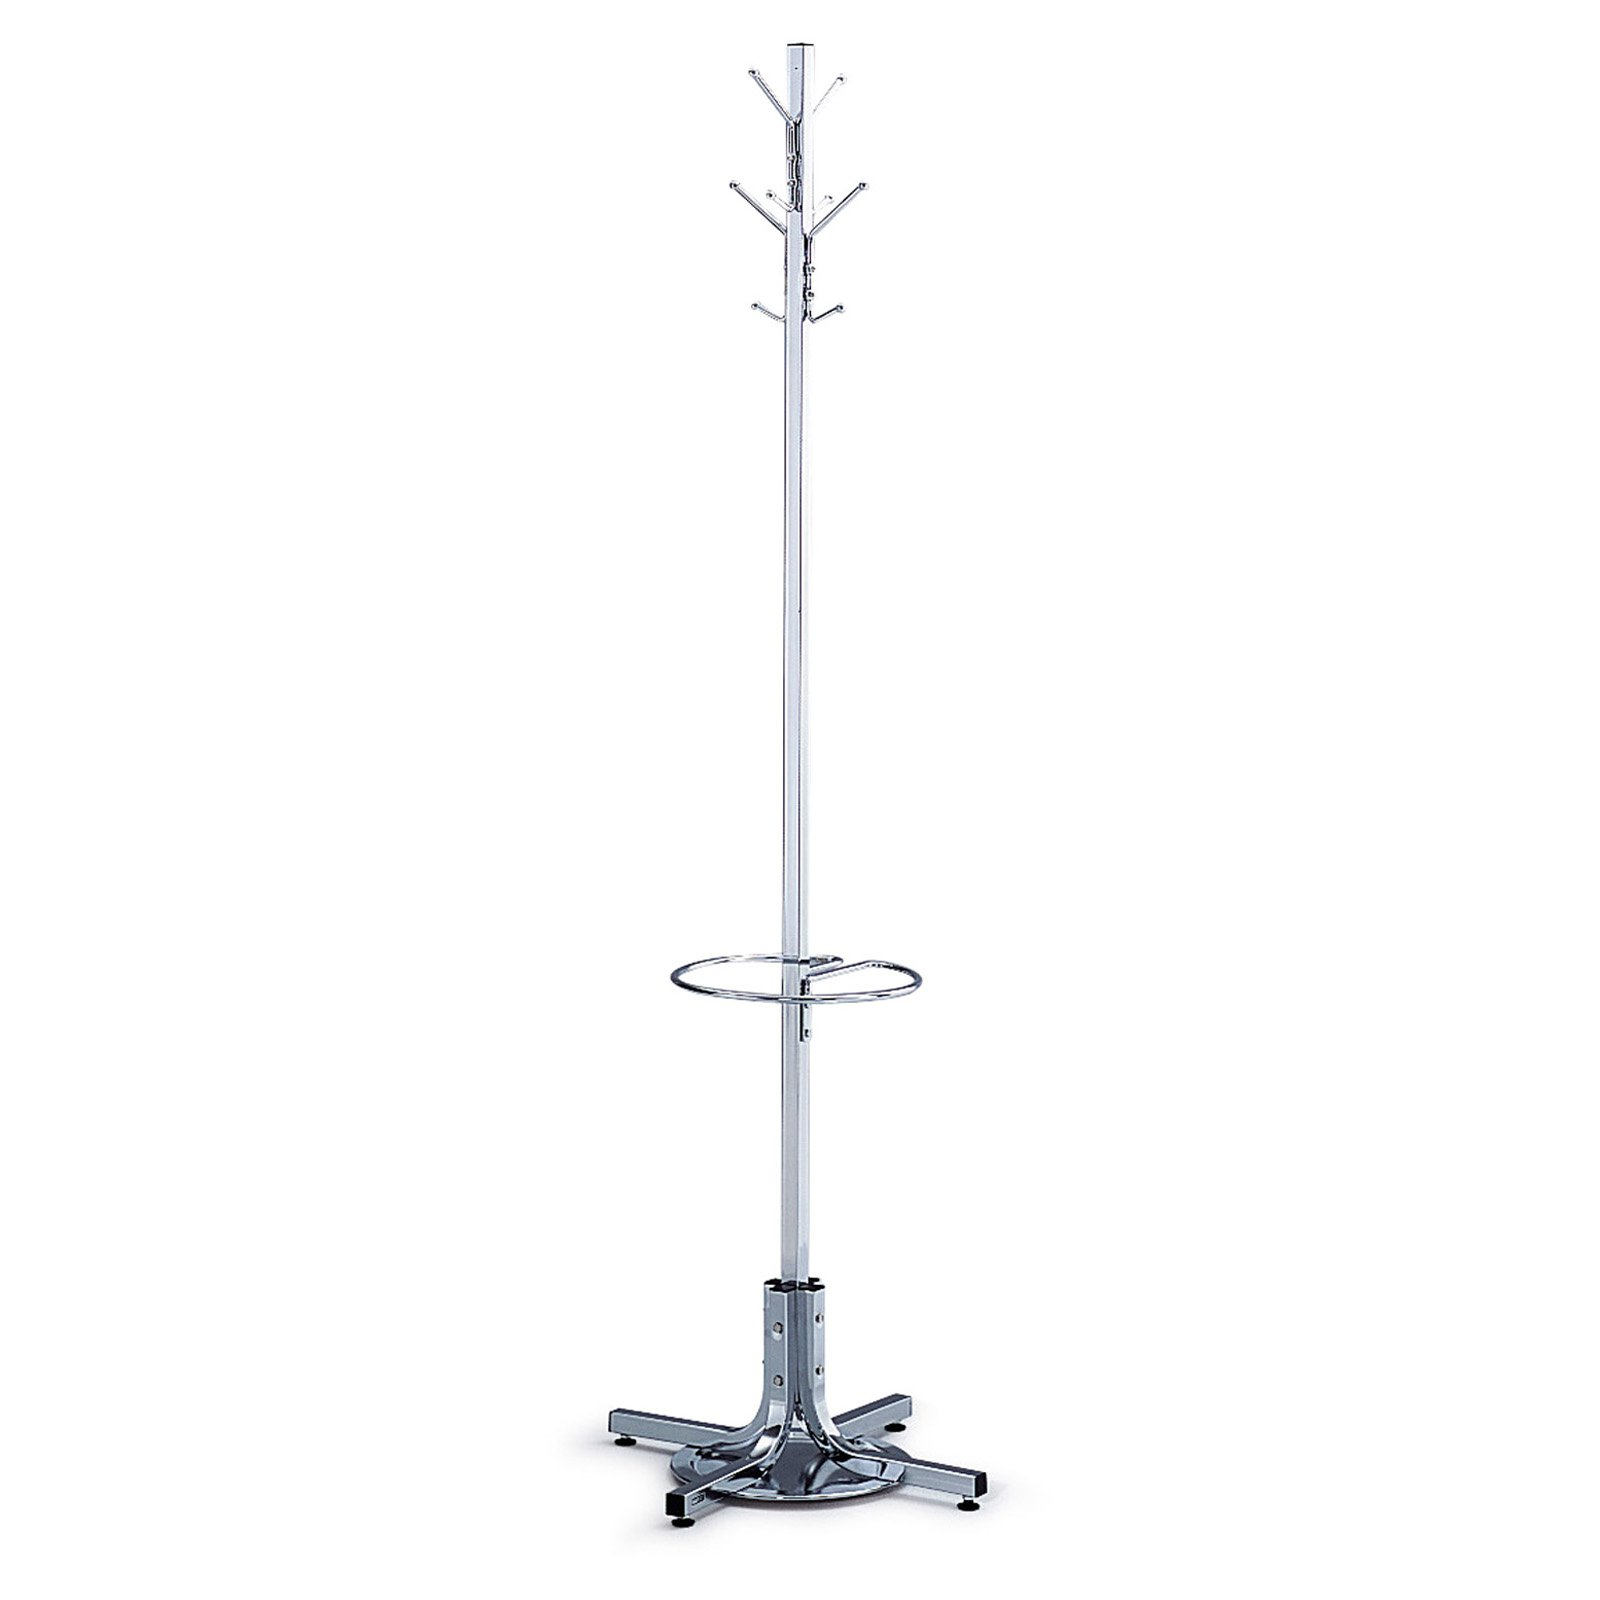 Safco Metal Metro Standing Coat Rack and Umbrella Stand